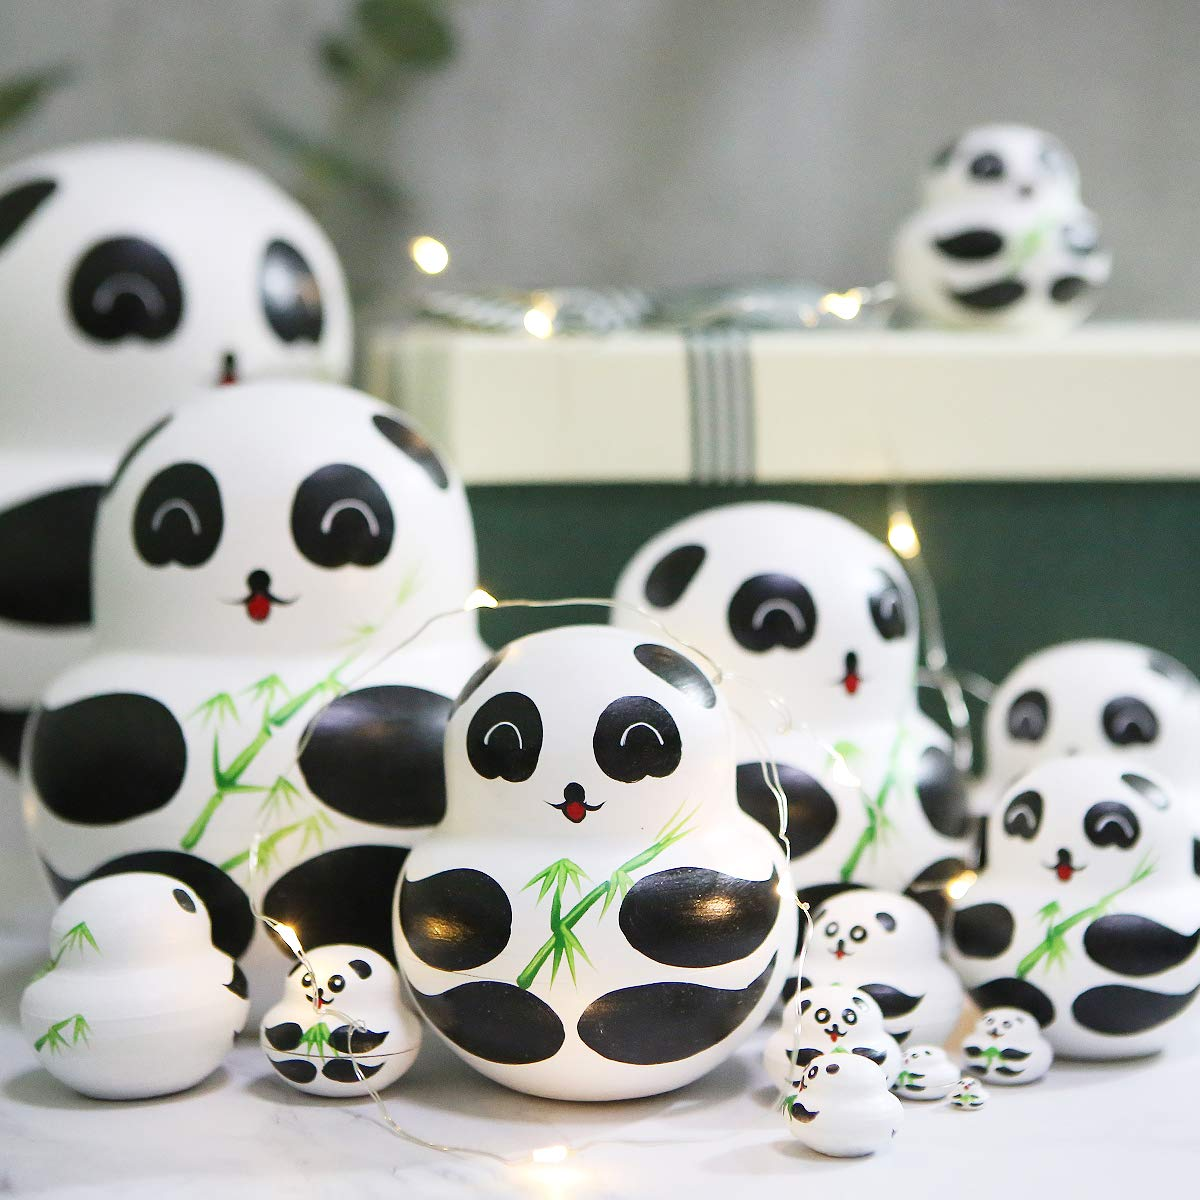 Apol Set of 15 Panda Bear with Bamboo Nesting Dolls Big-Belly Wooden Handmade Matryoshka Russian Doll in a Box with Bow for Kids Toy Home Decoration Year by Apol (Image #7)